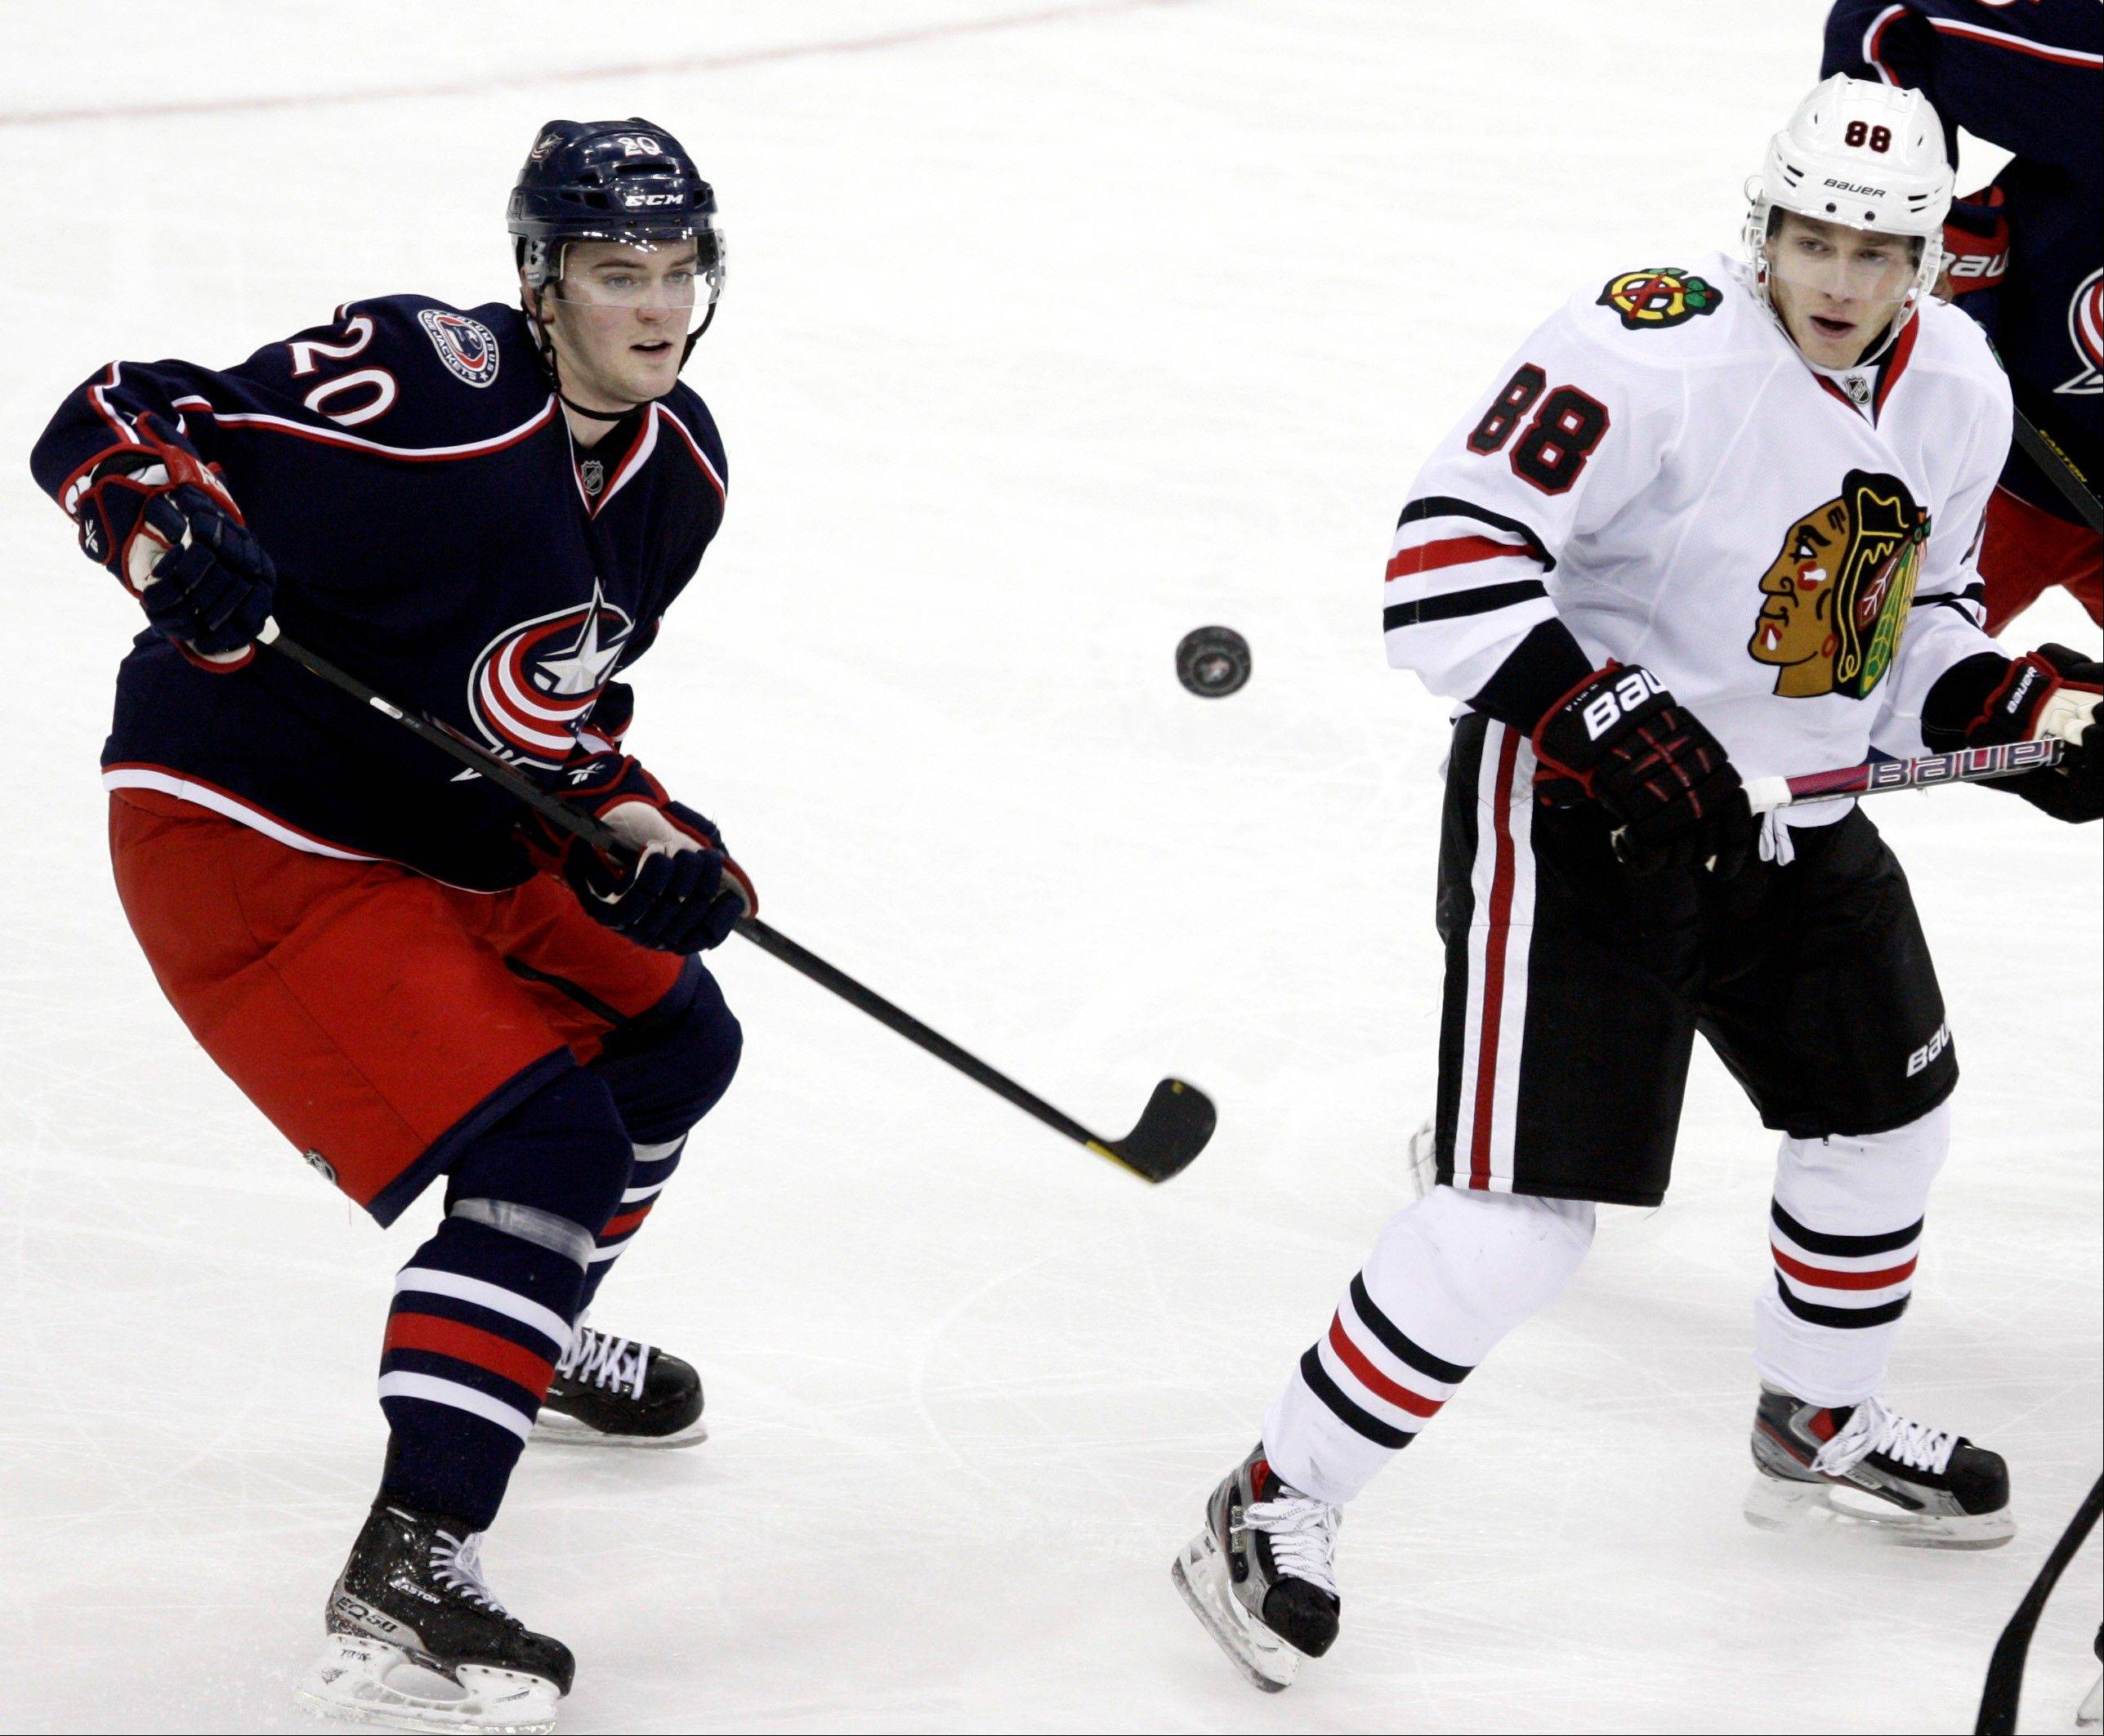 Chicago Blackhawks' Patrick Kane, right, and Columbus Blue Jackets' Tim Erixon work for the puck during the third period.